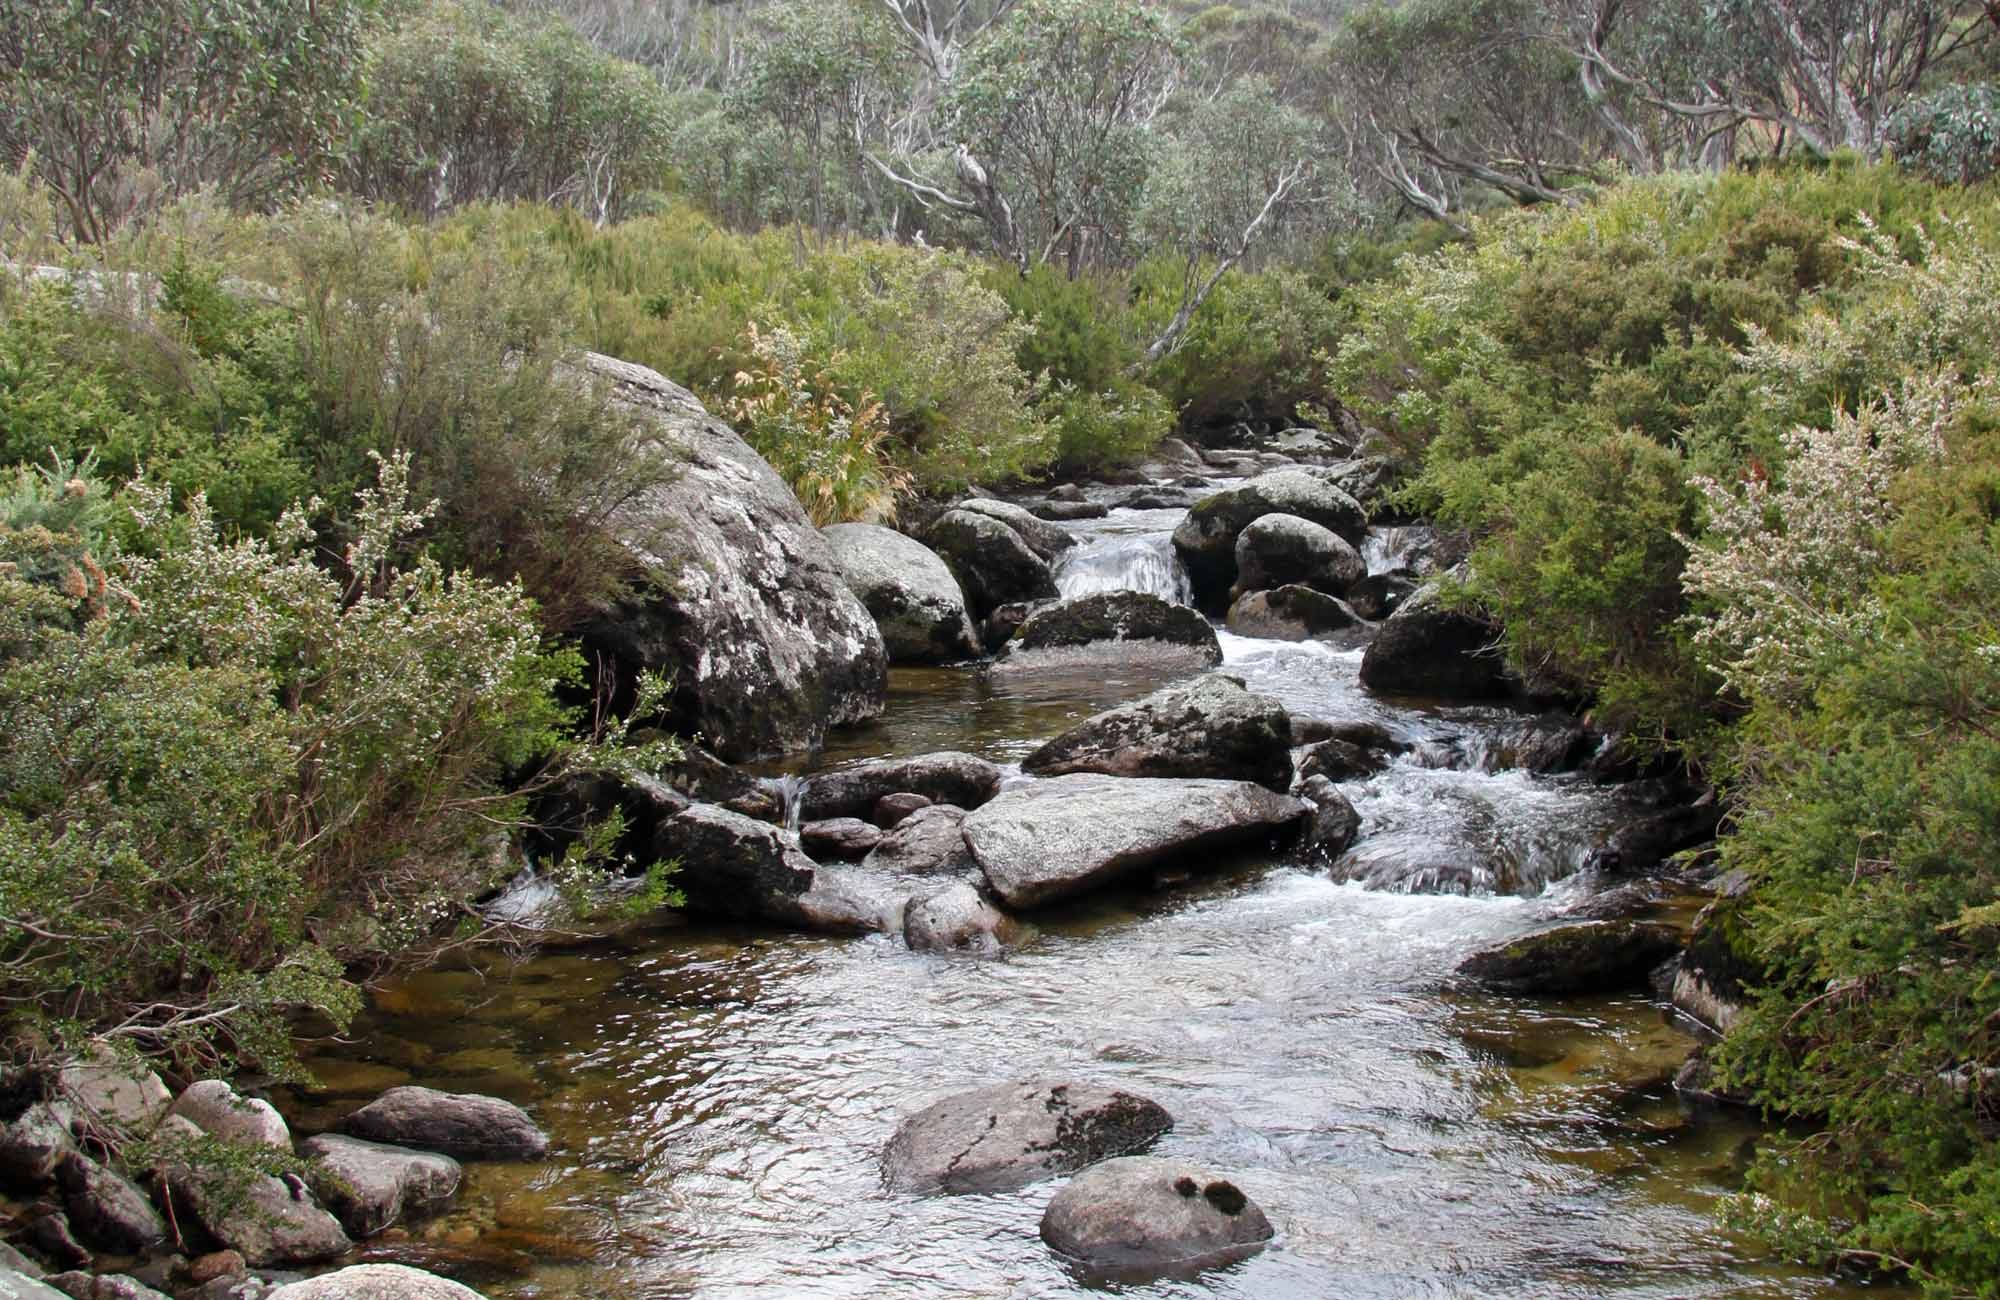 Thredbo River Track, Kosciuszko National Park. Photo: Clint and Todd Wright